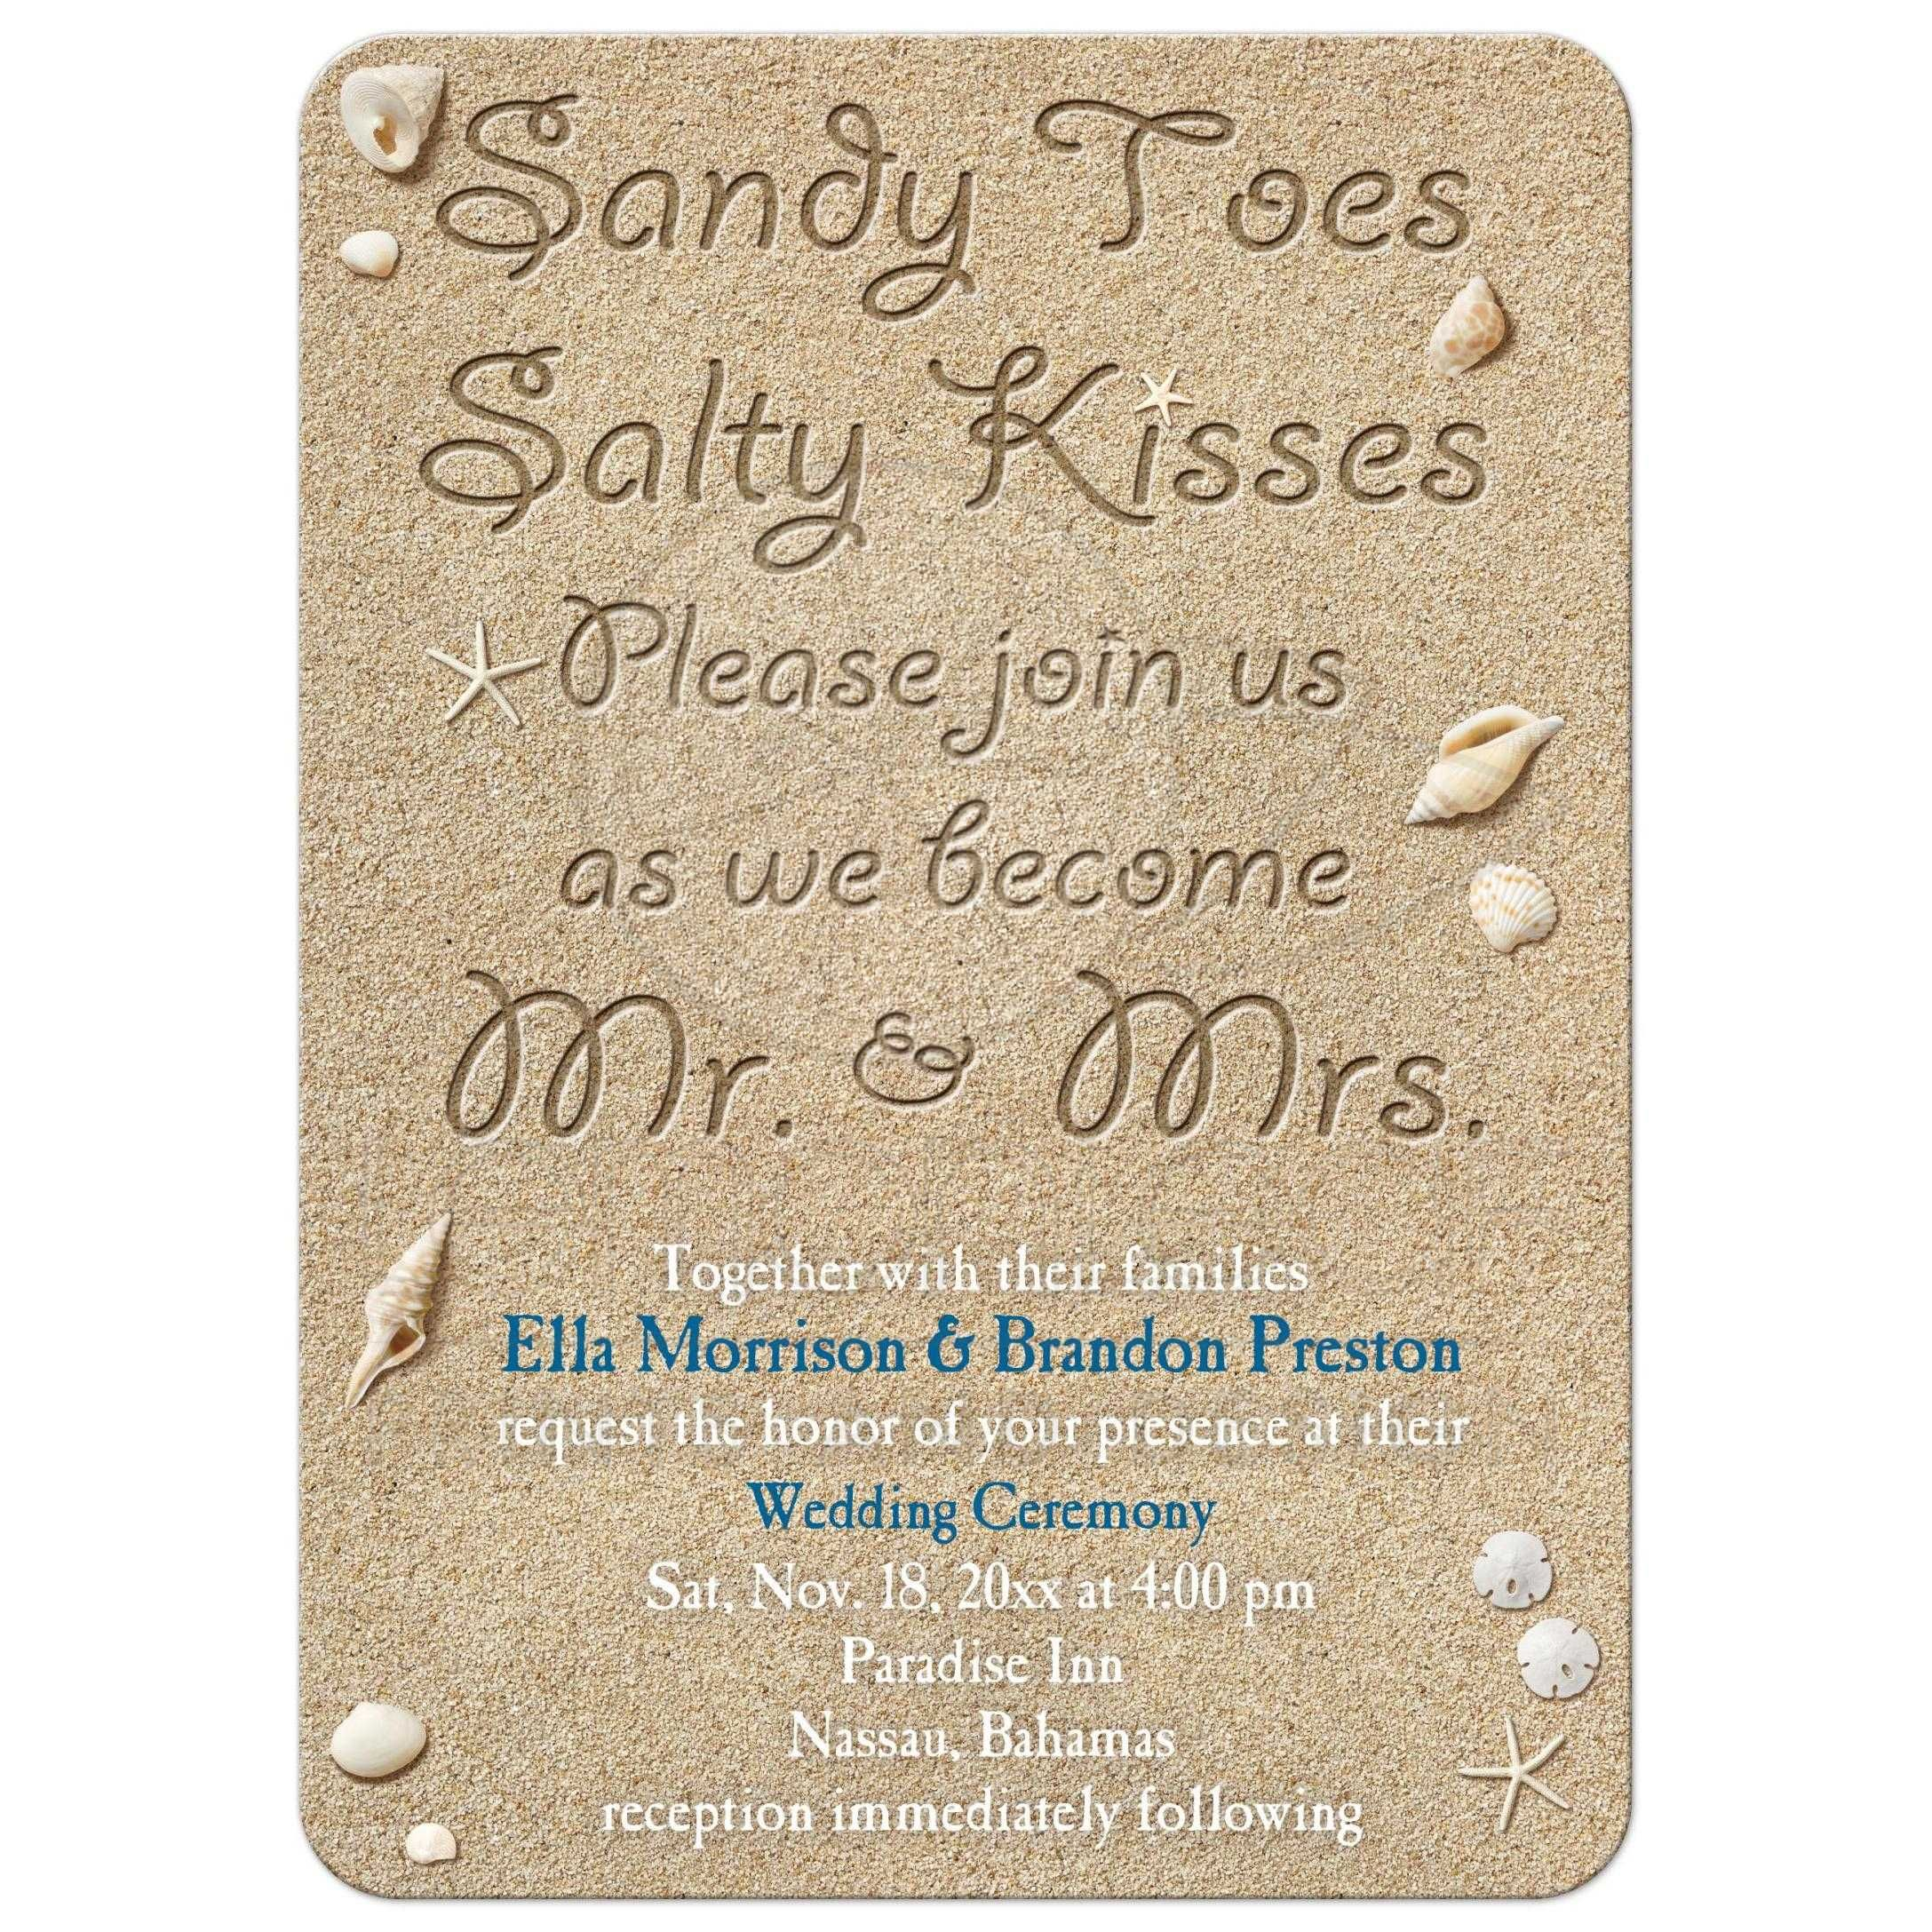 Wedding Abroad Invitation Wording Ideas: Wedding Invitation - Beach Sandy Toes Salty Kisses